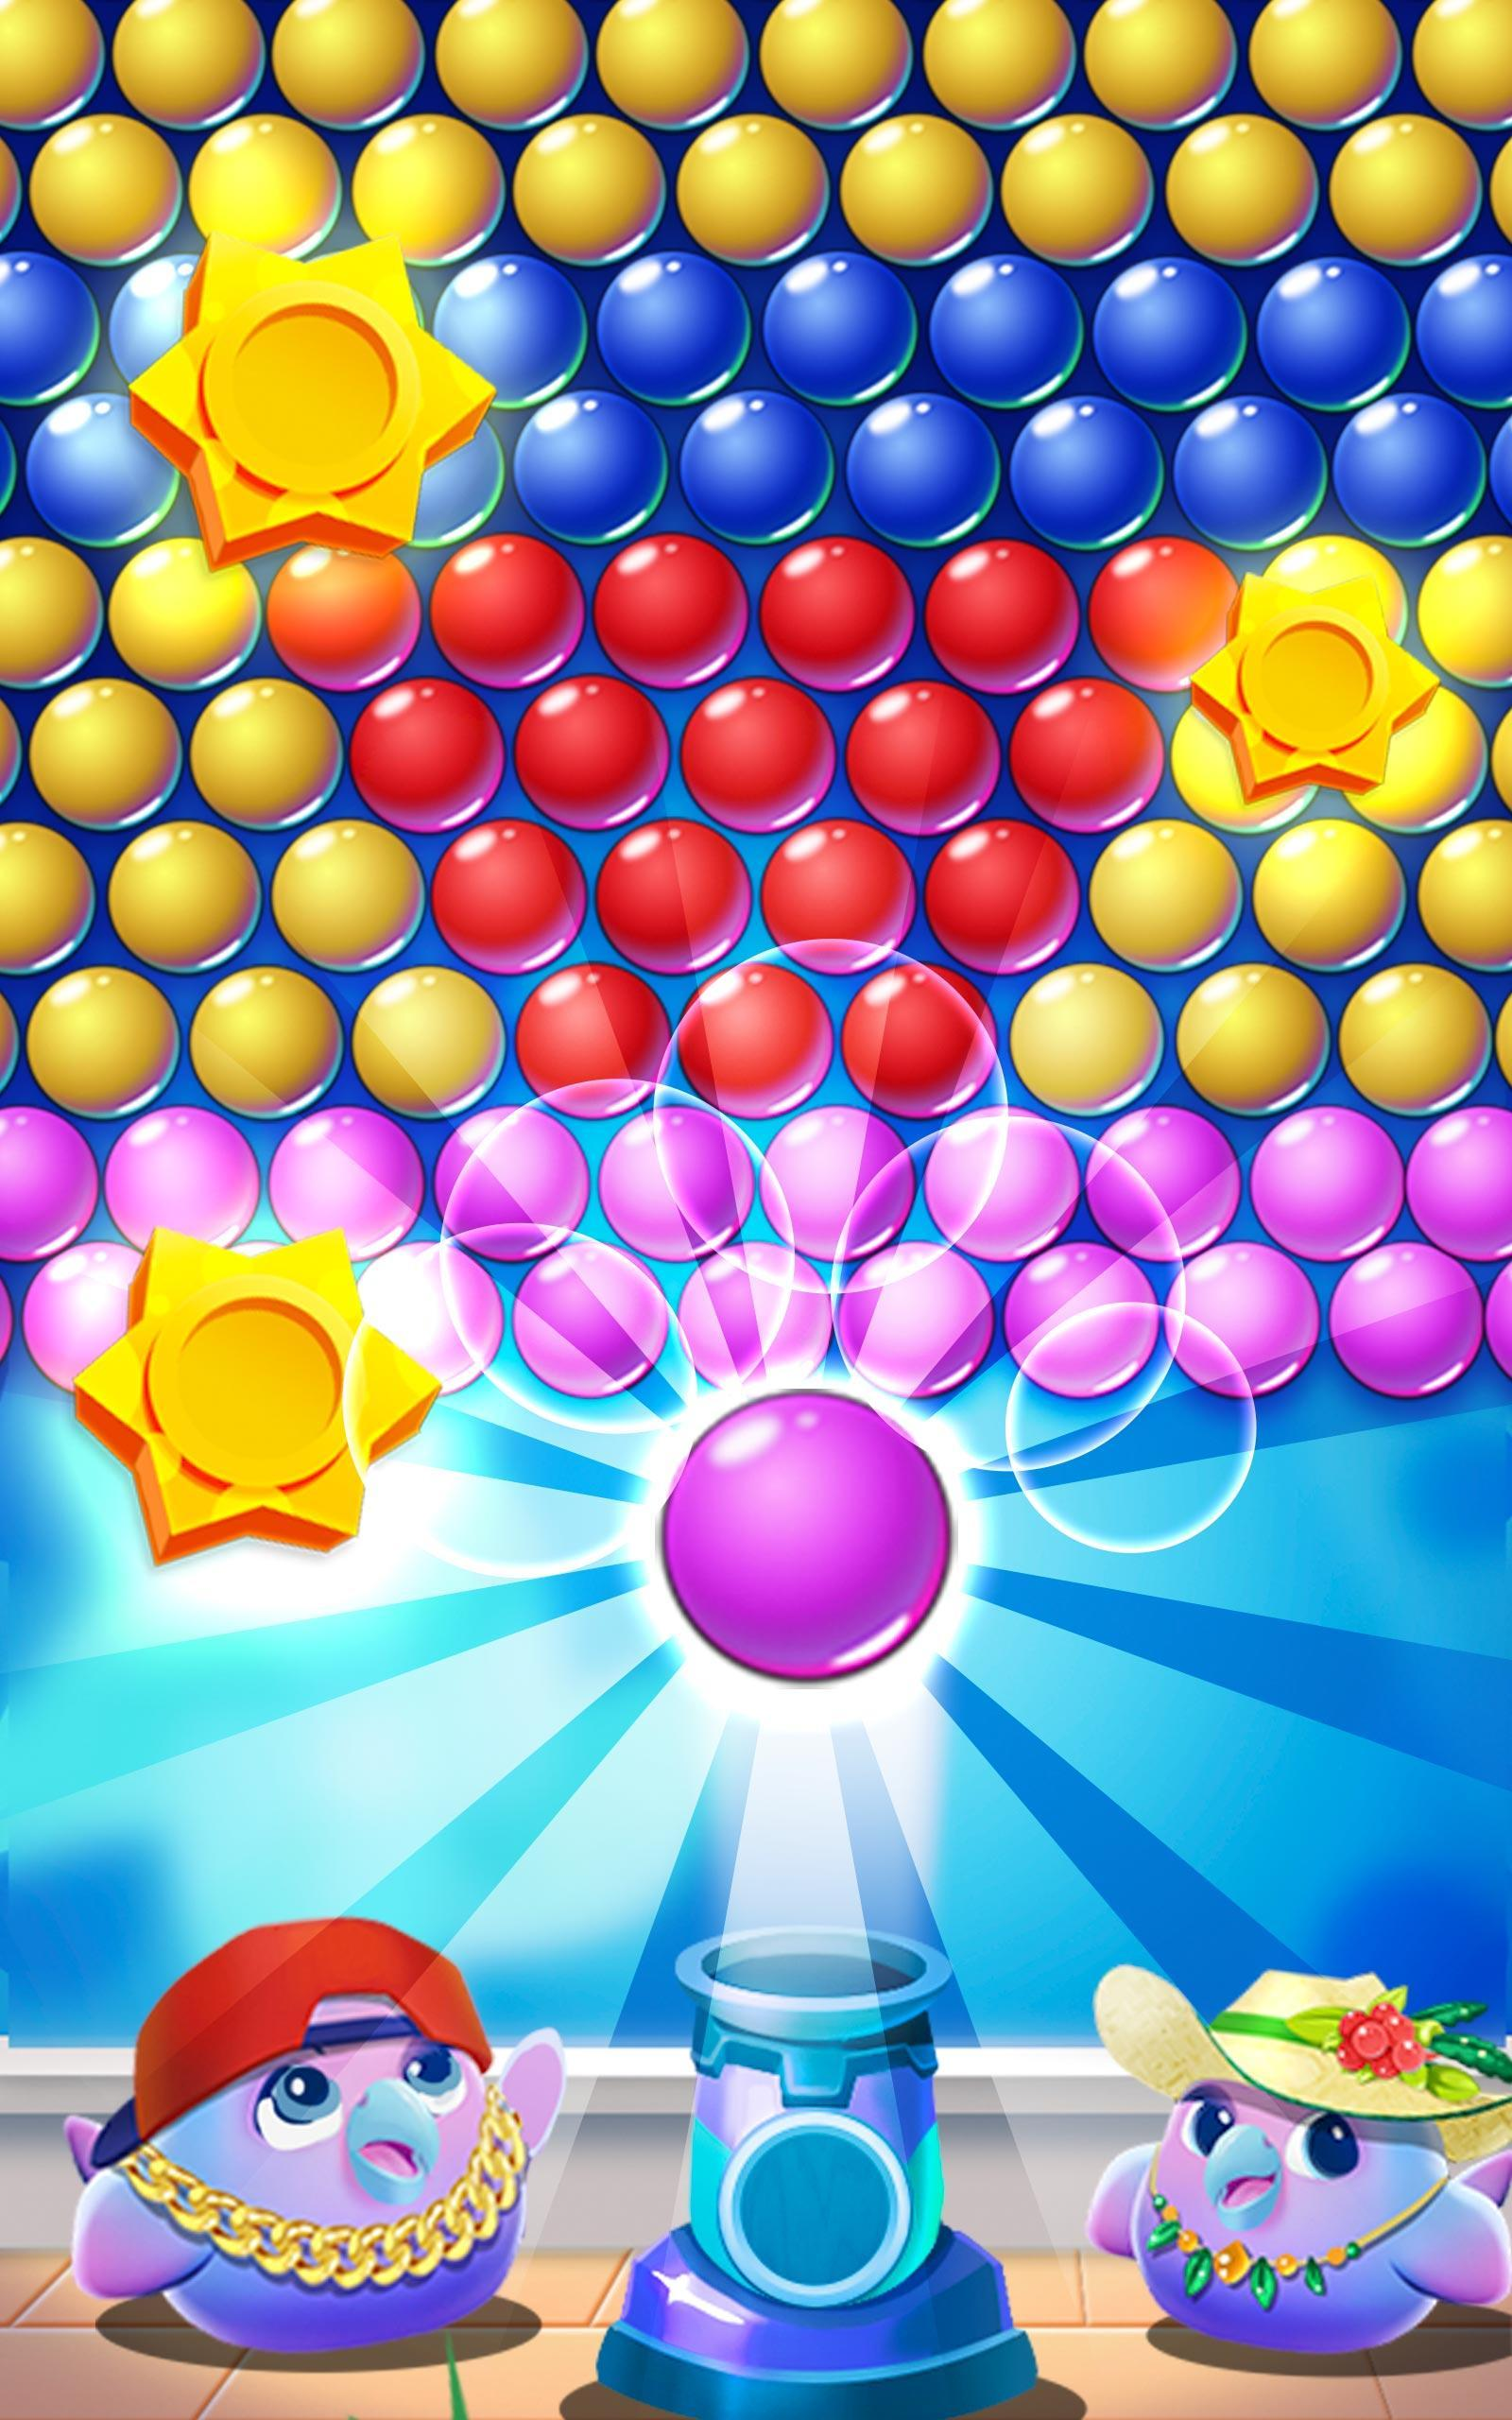 Bubble Shooter SГјddeutsche